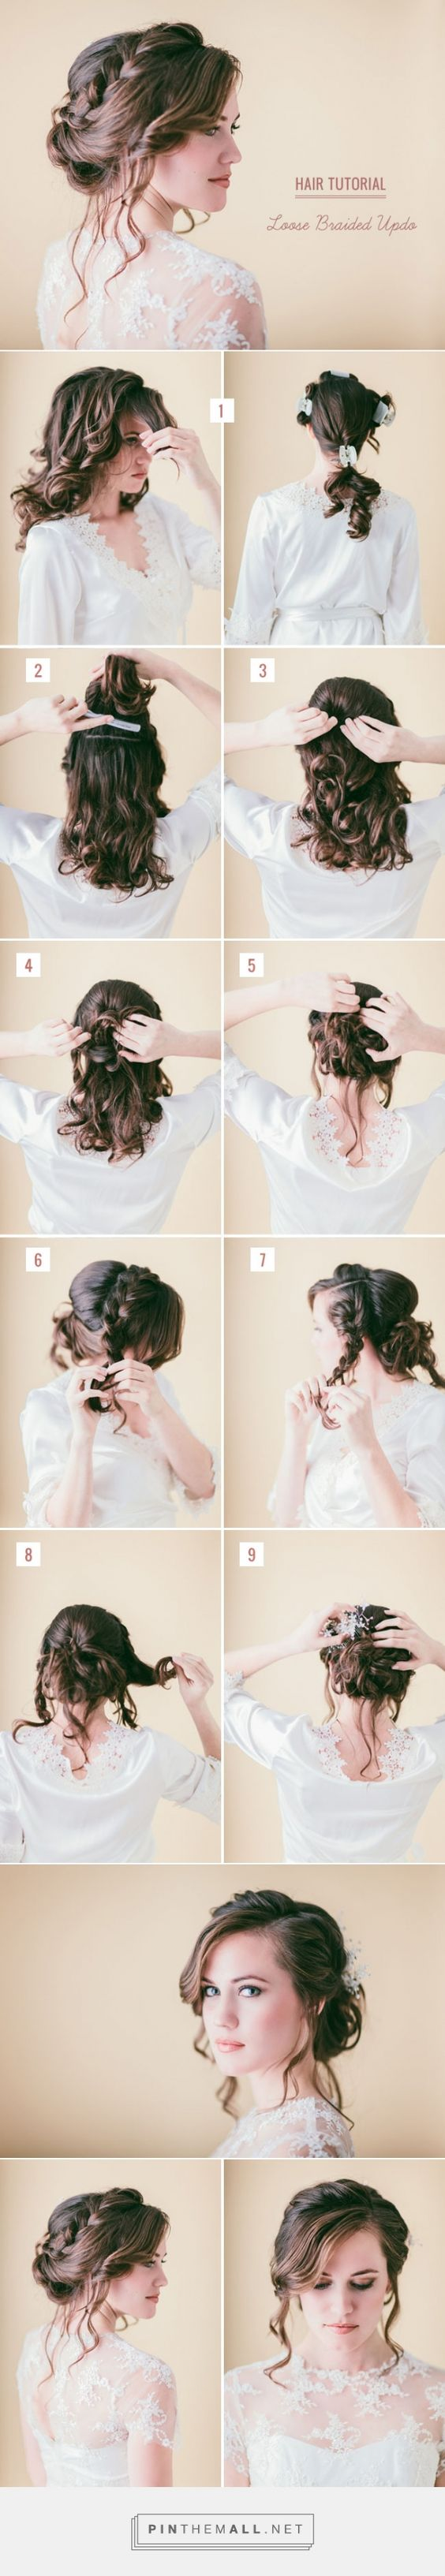 Hair Tutorial: Loose Braided Updo | Green Wedding Shoes Wedding Blog | Wedding Trends for Stylish + Creative Brides... - a grouped images picture - Pin Them All: